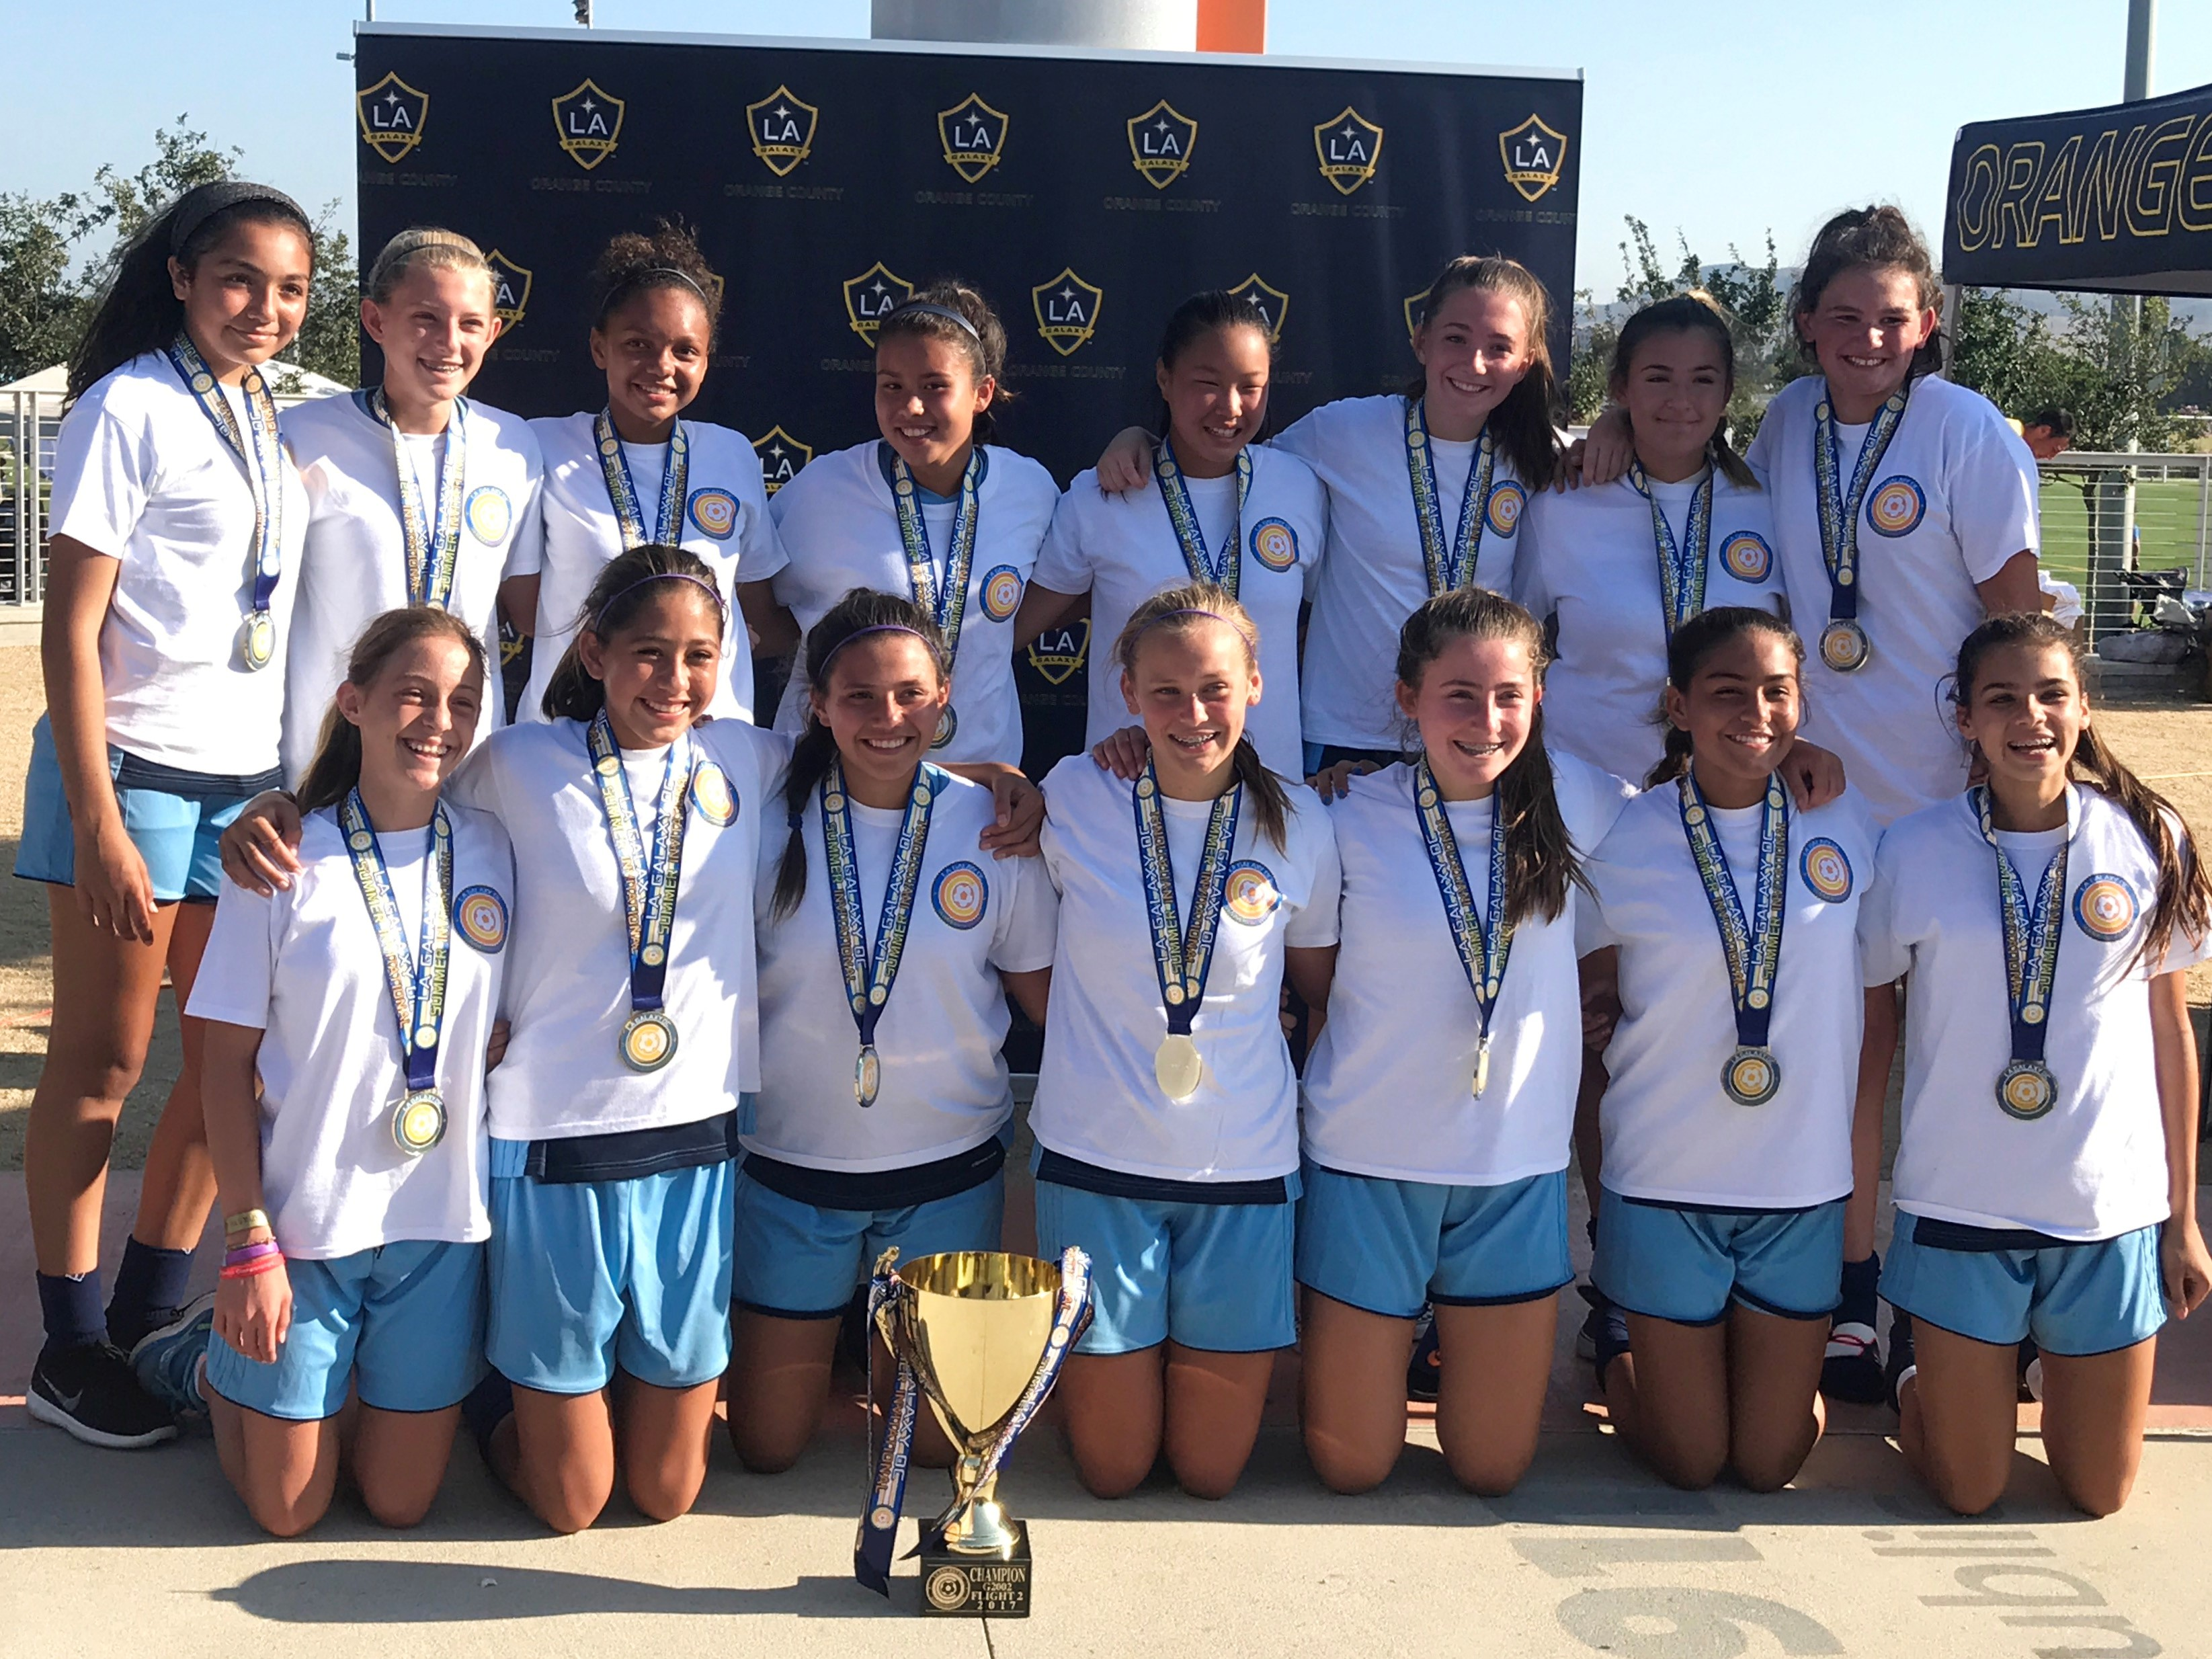 G2003 White Crowned Champions